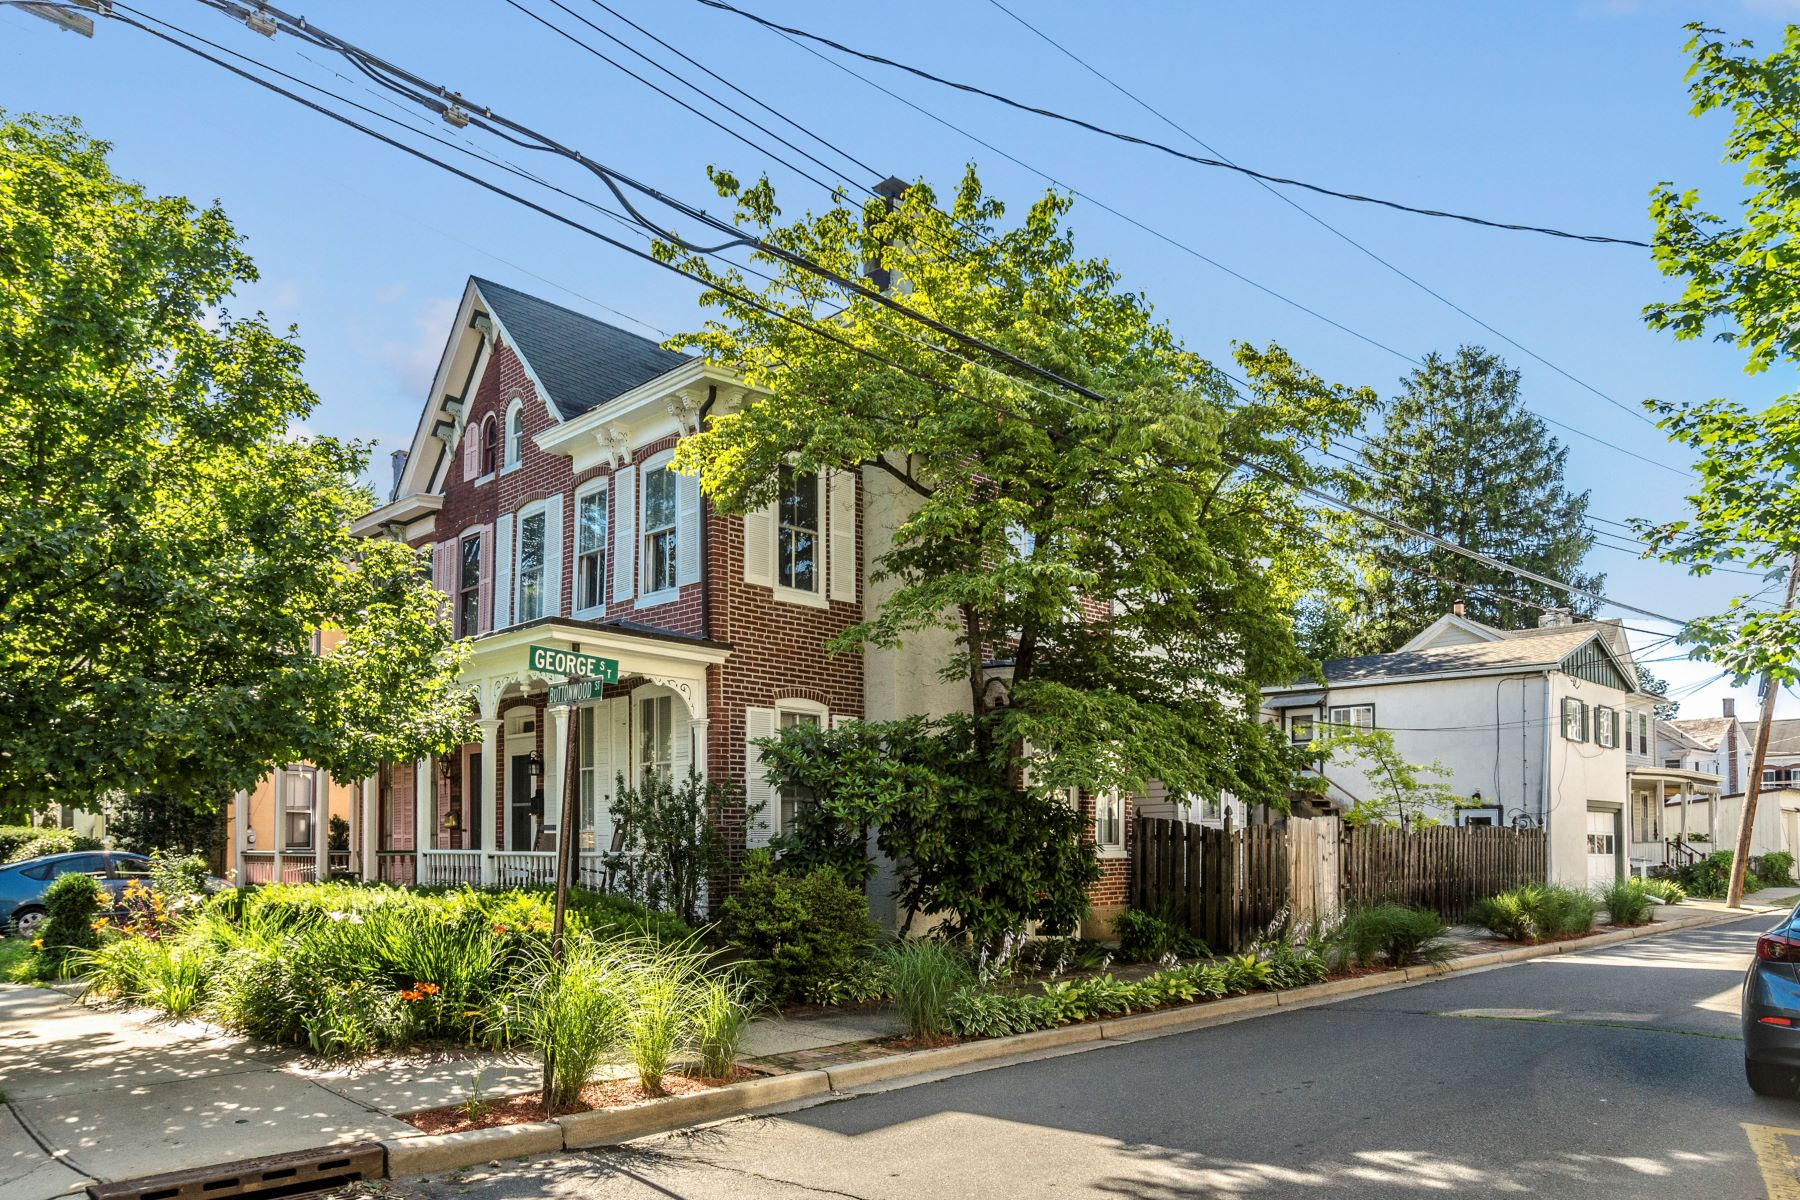 Property for Sale at Live and Prosper in a Charming Victorian 33 Buttonwood Street, Lambertville, New Jersey 08530 United States